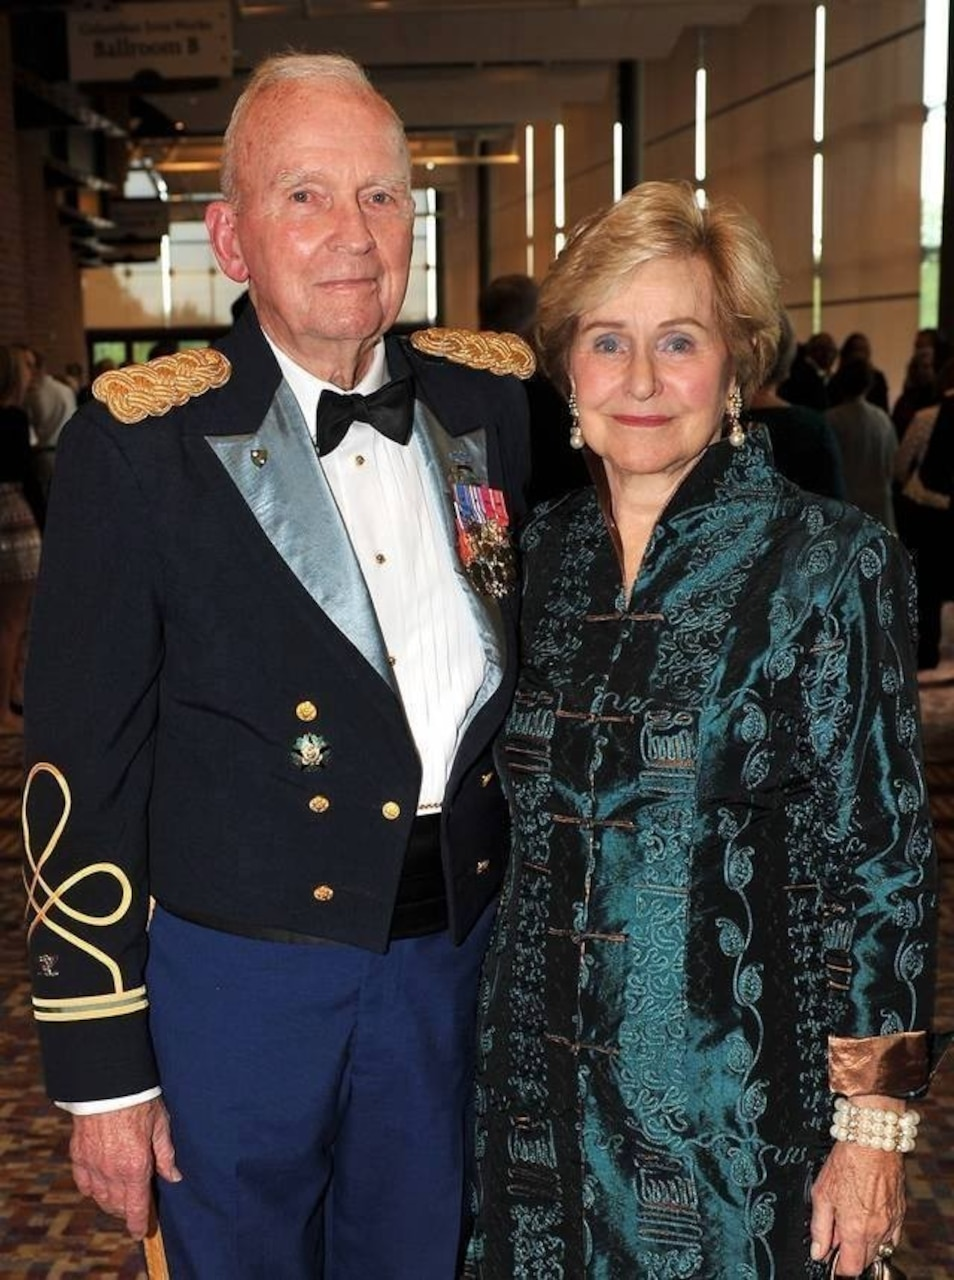 An elderly man in Army dress uniform and an elderly woman pose for a photo.